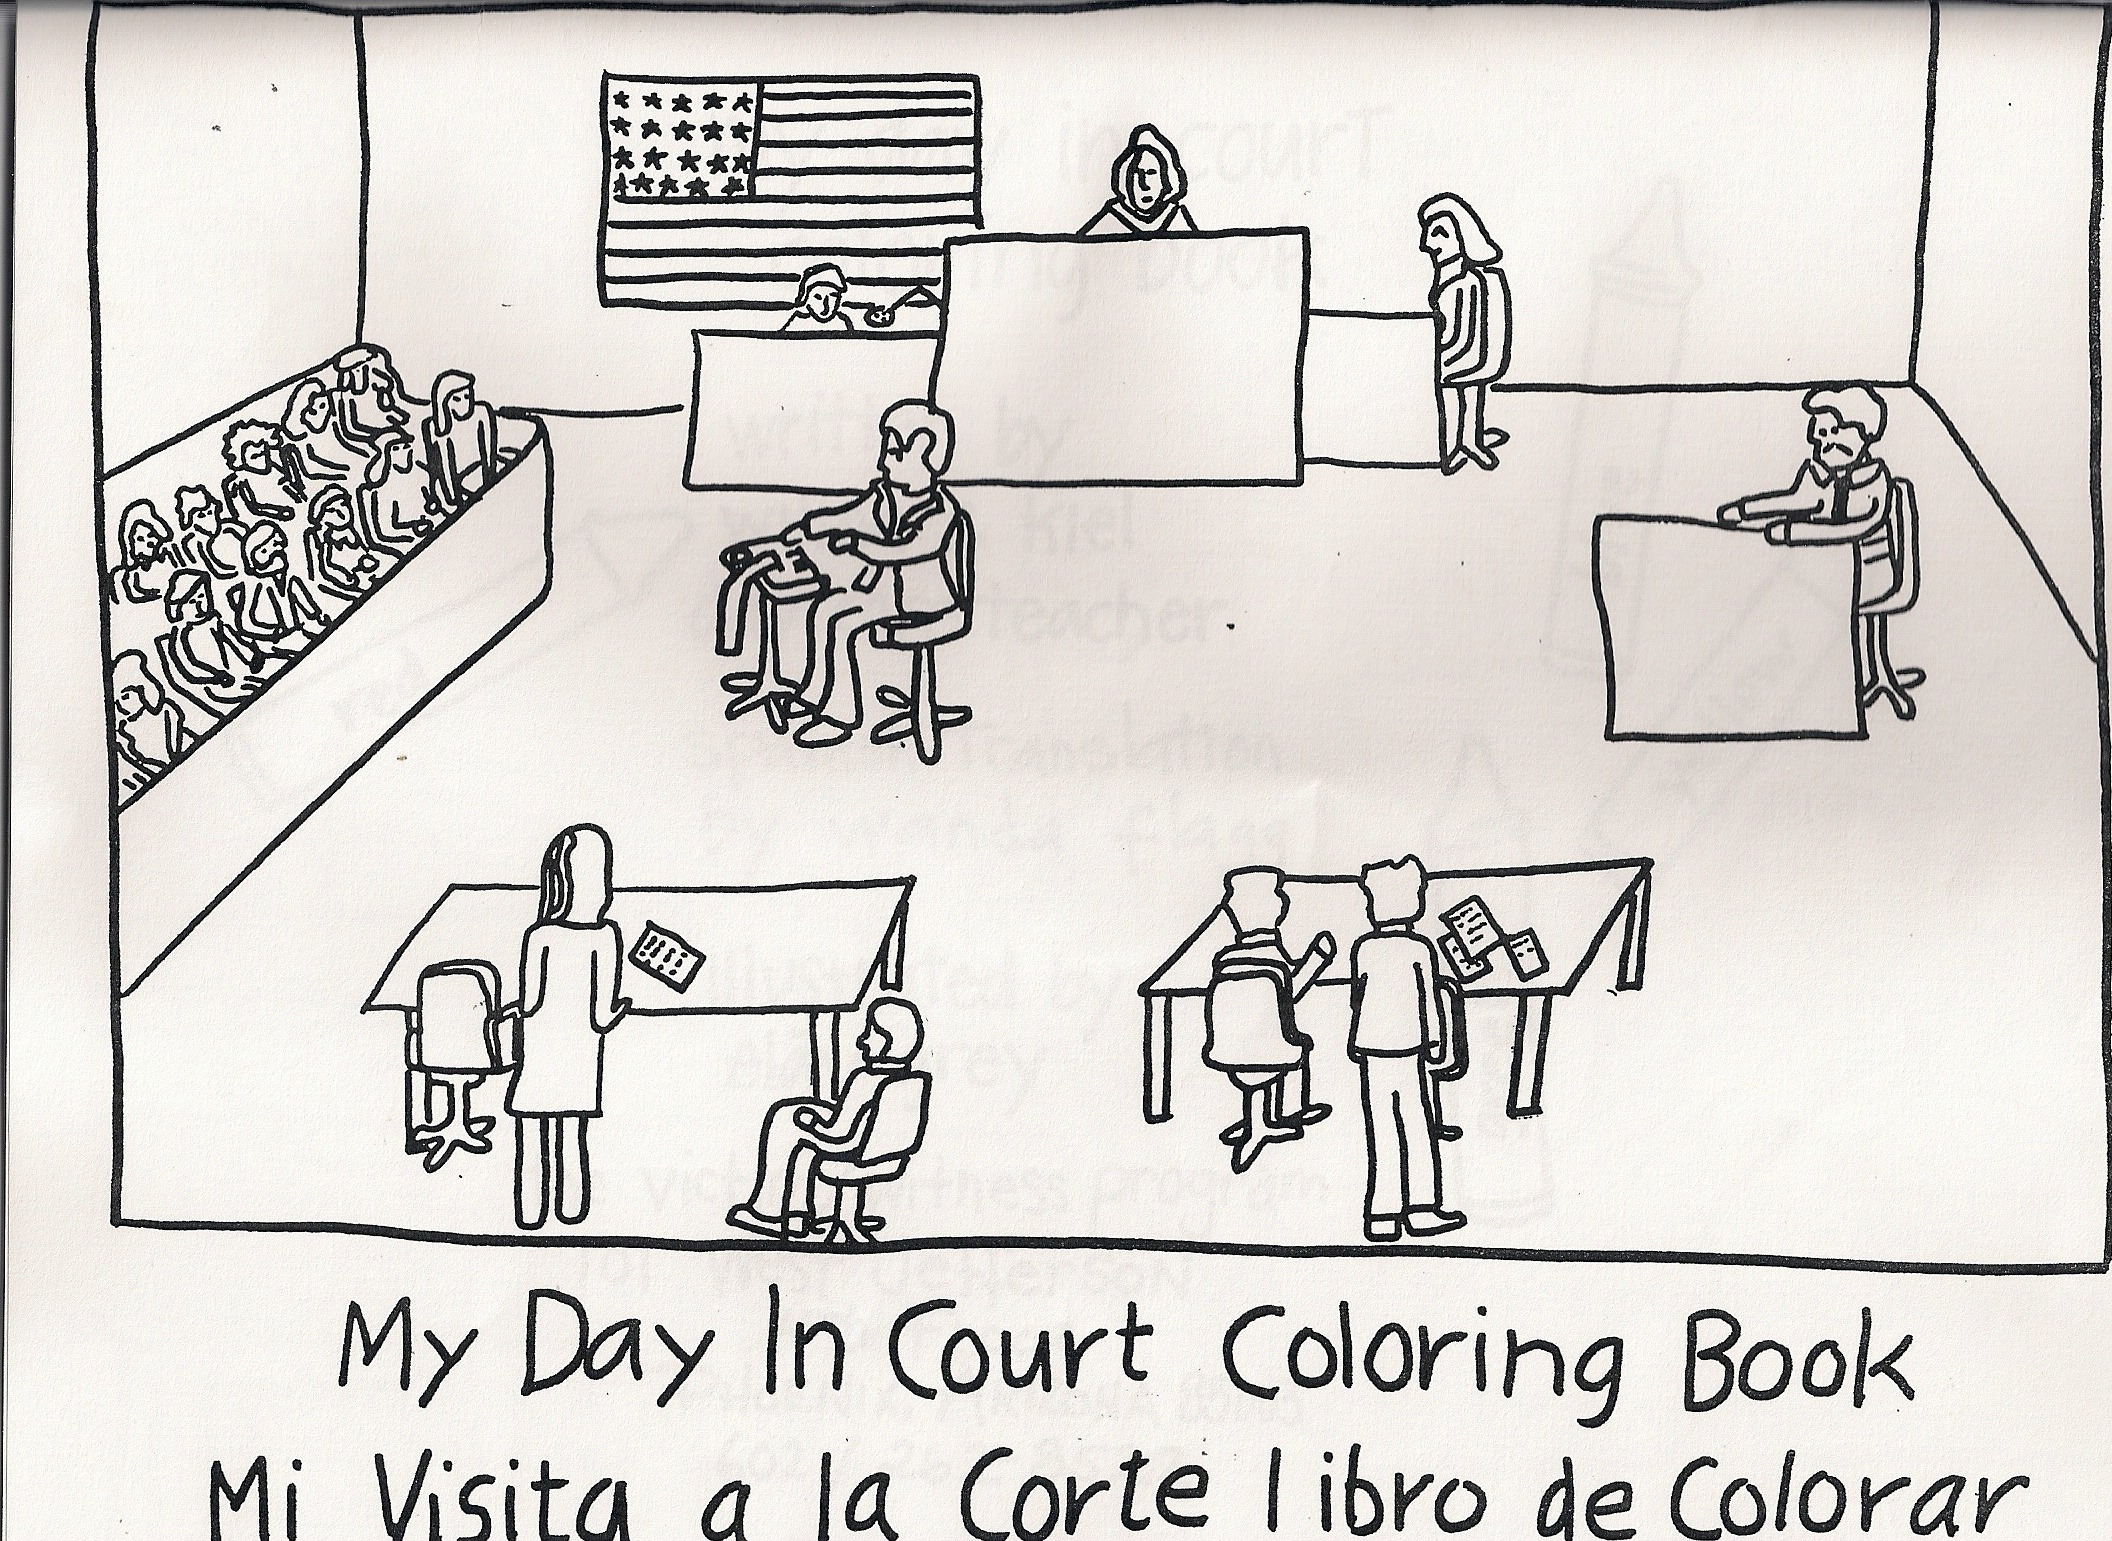 Kiddies coloring their way to understanding the court Coloring book layout